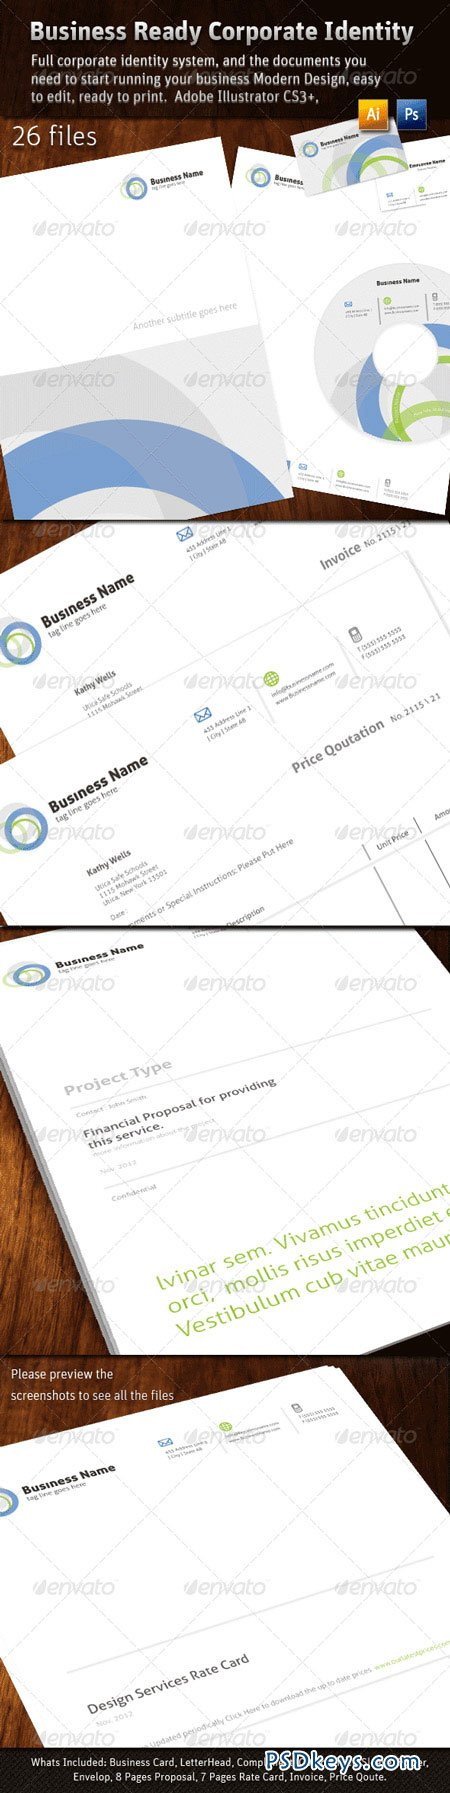 Business Ready Corporate Identity 400904